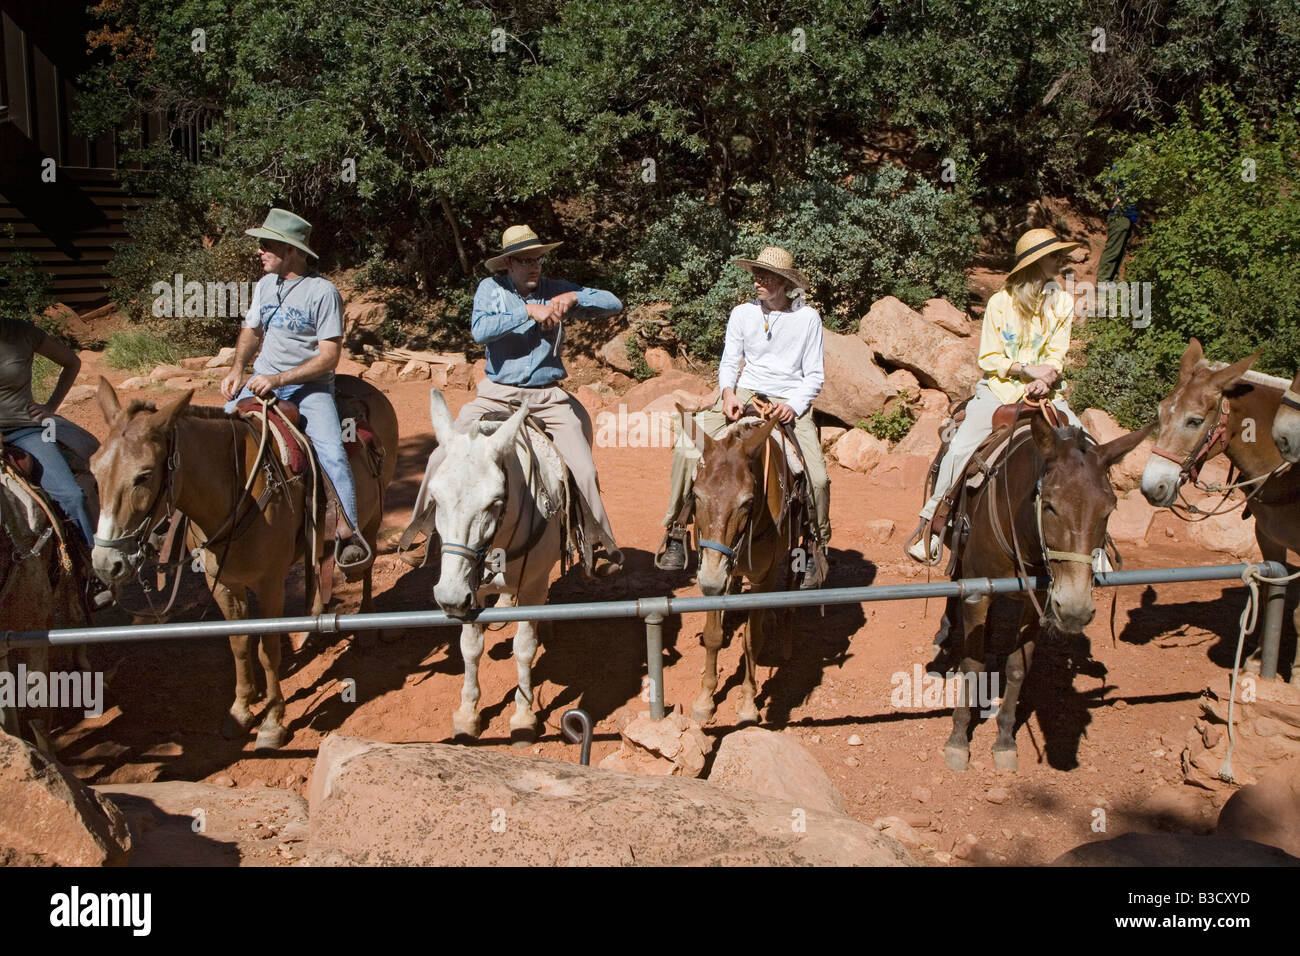 Mules on North Kaibab Trail in Grand Canyon - Stock Image